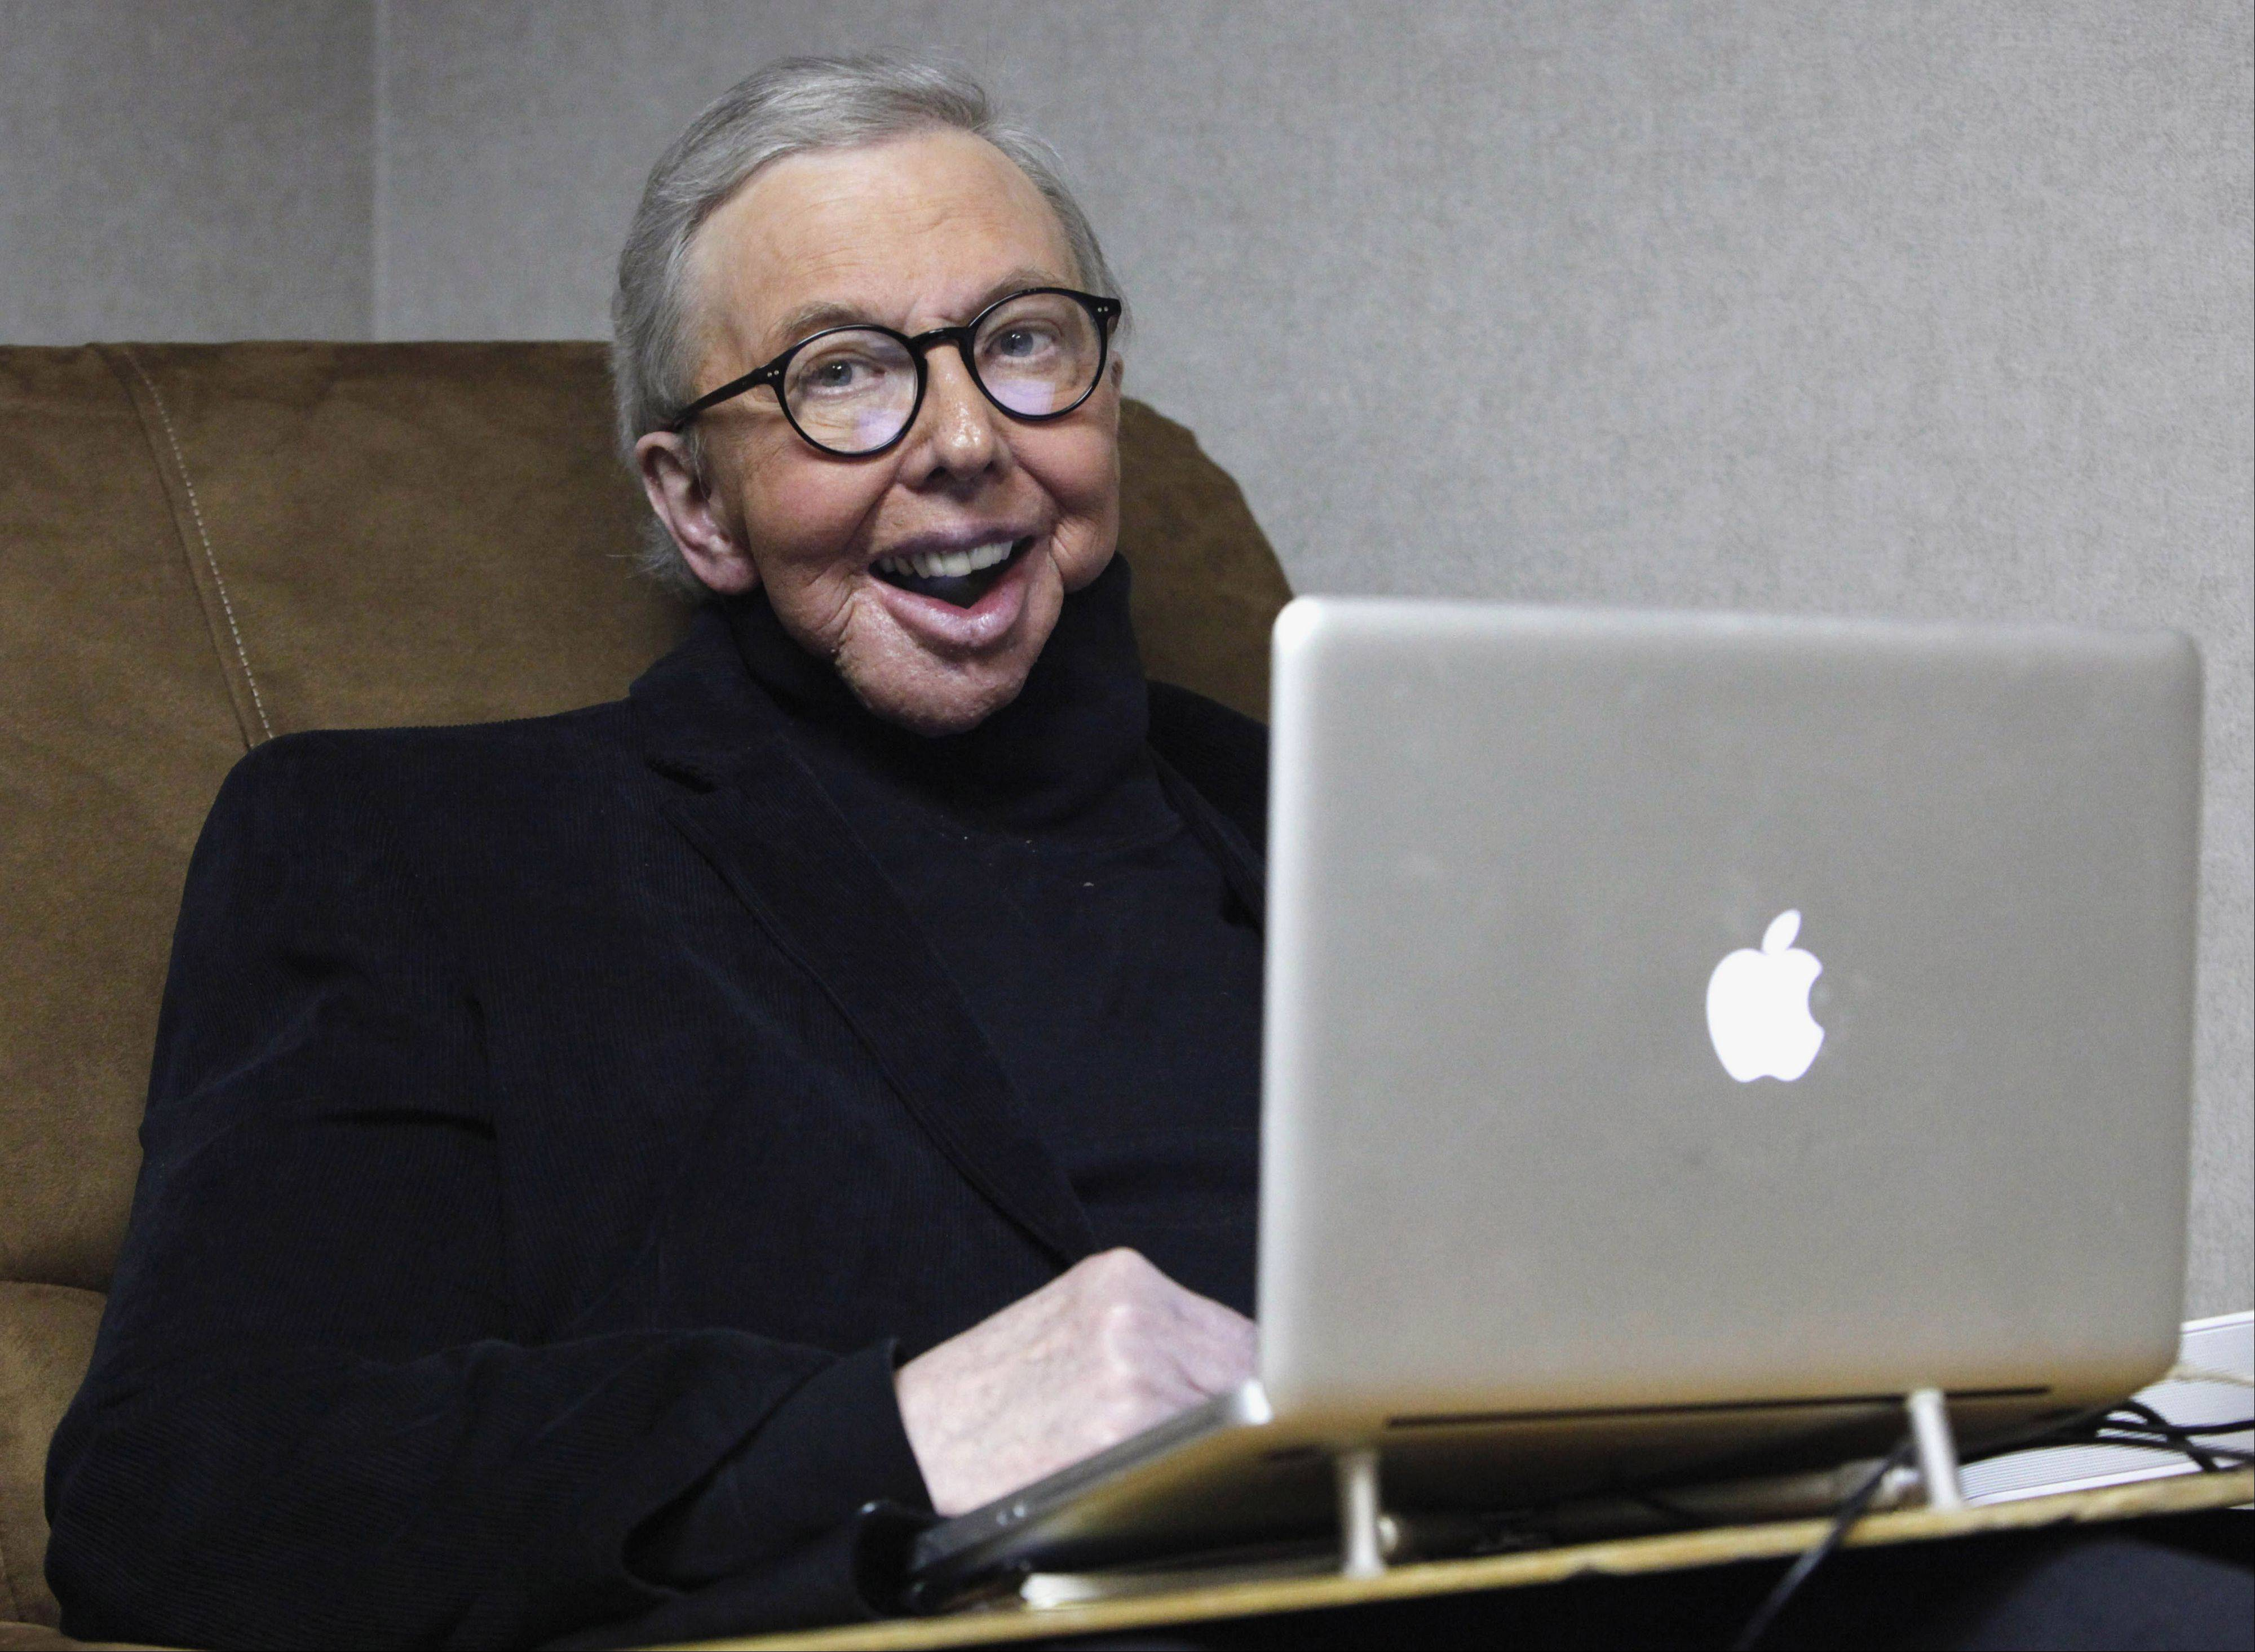 Pulitzer Prize-winning movie critic Roger Ebert, seen here in a 2011 photo, died Thursday after a long battle with cancer.